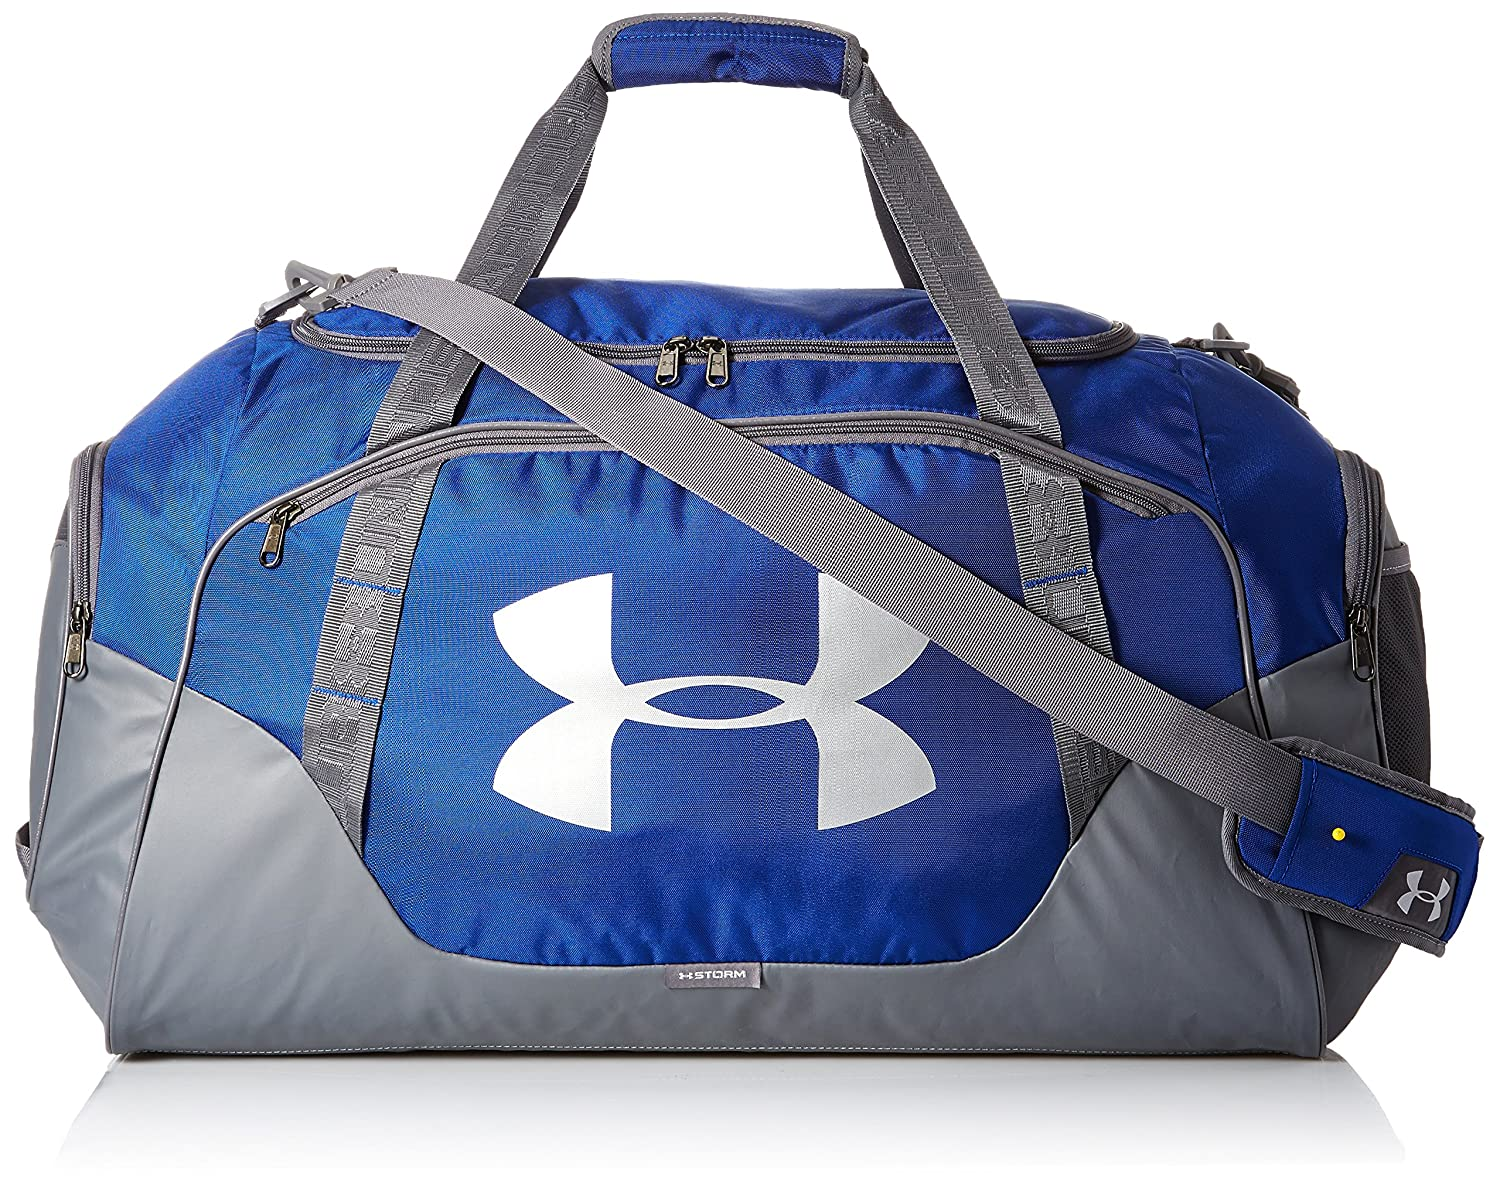 6db6dbc10 Under Armour Undeniable 3.0 Large Duffle Bag: Amazon.ca: Sports & Outdoors